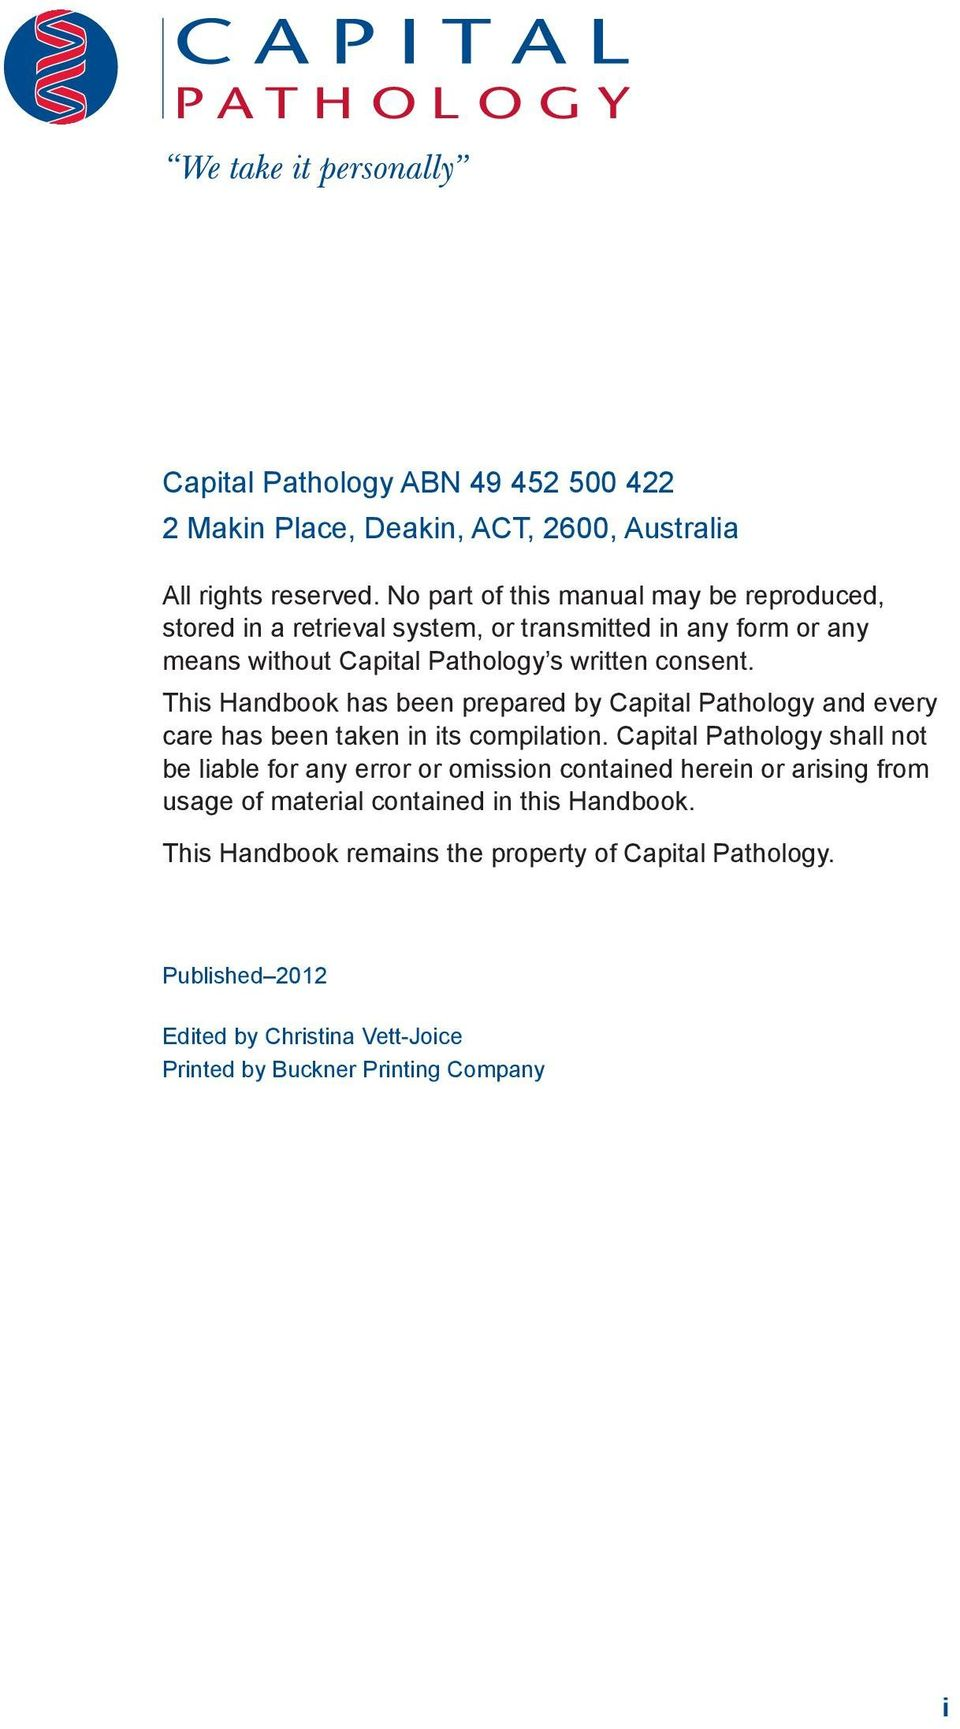 This Handbook has been prepared by Capital Pathology and every care has been taken in its compilation.